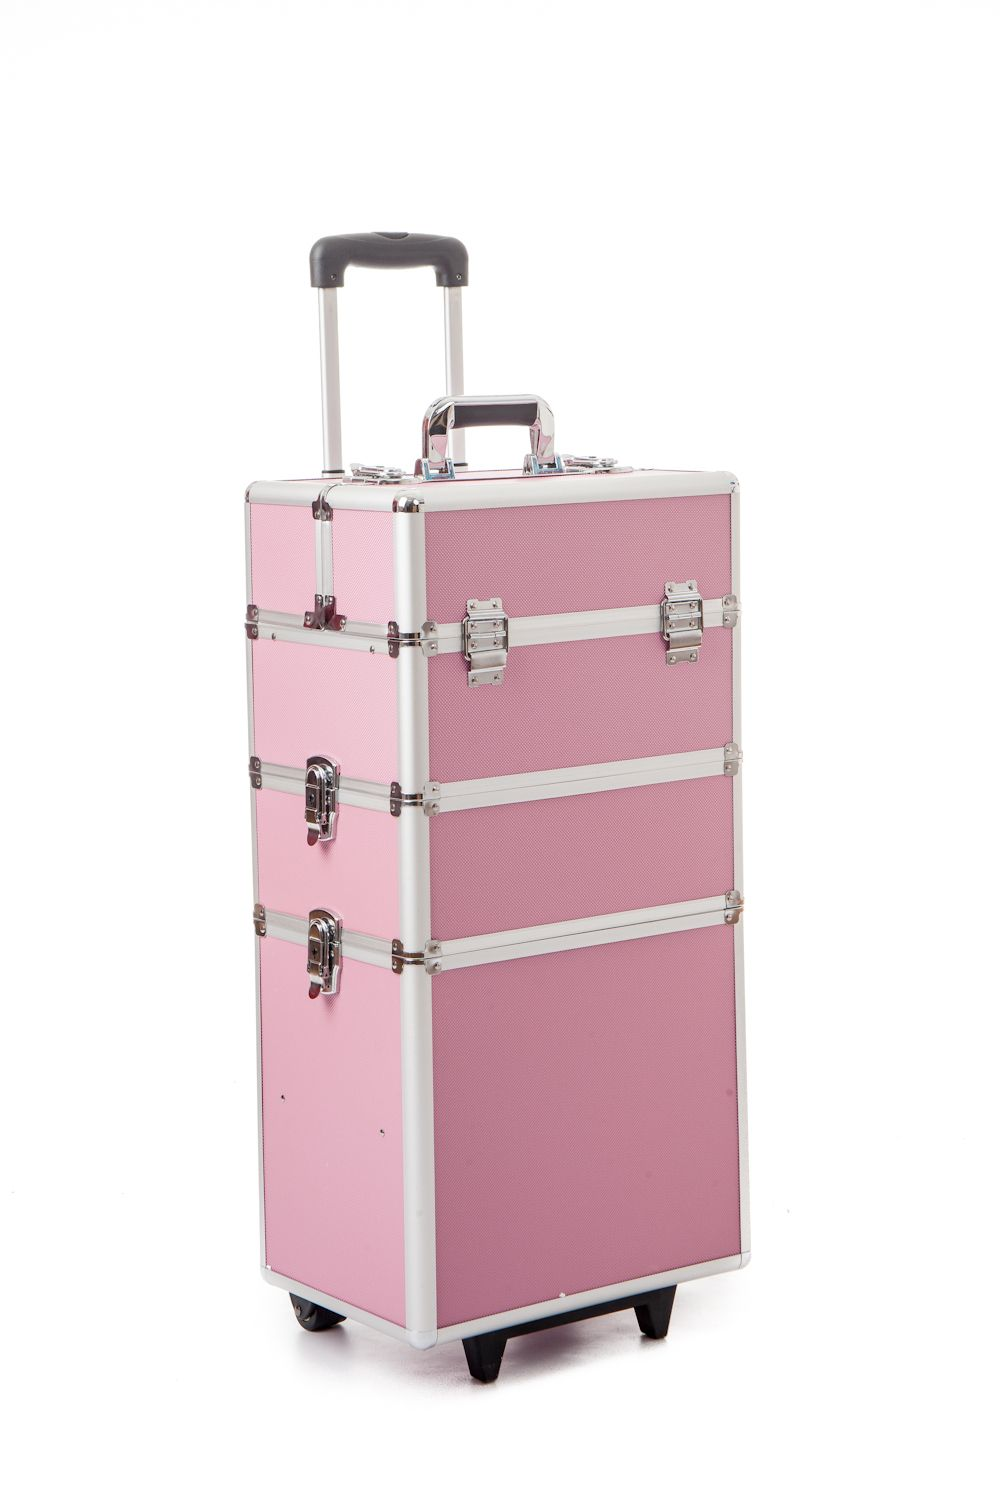 The Urbanity Pink Beauty Trolley is perfect for